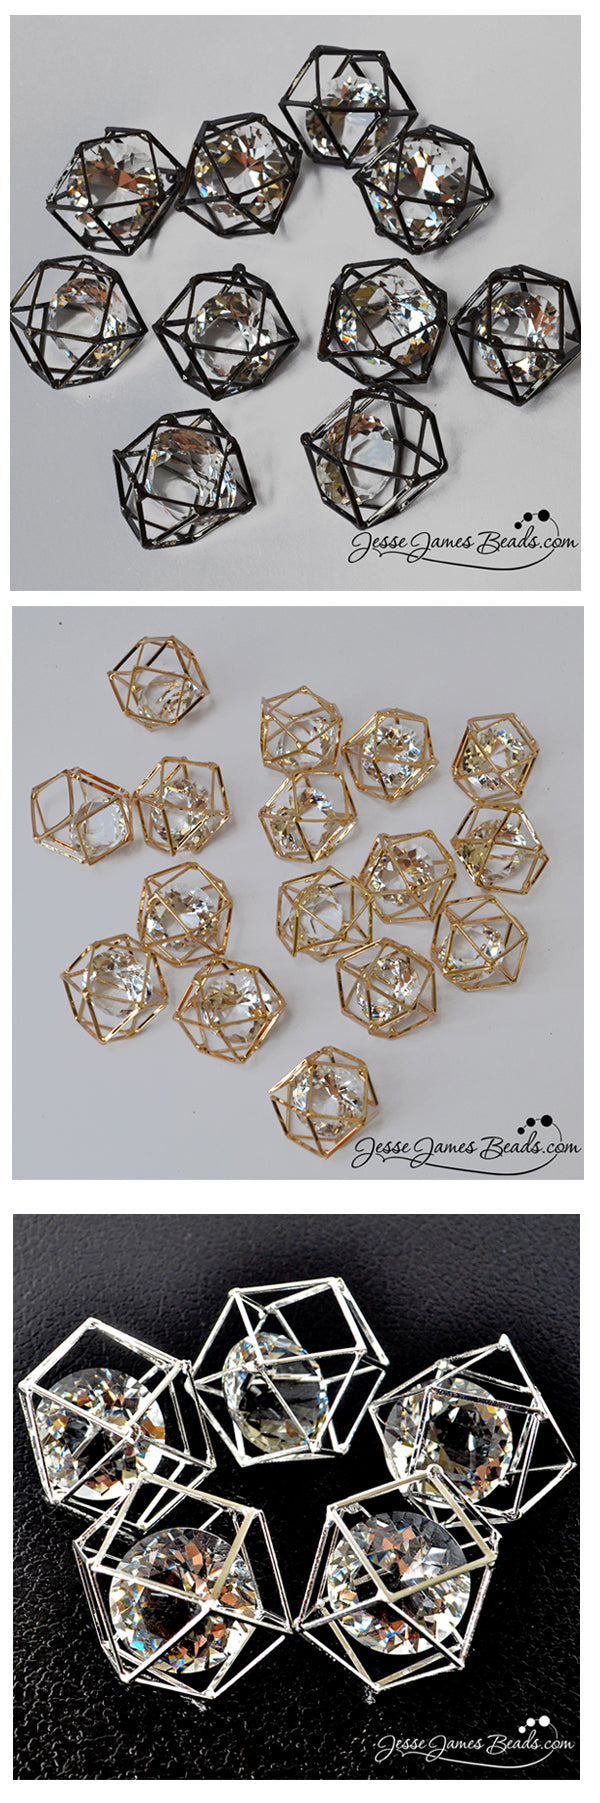 Cage Crystal Beads from Jesse James Beads